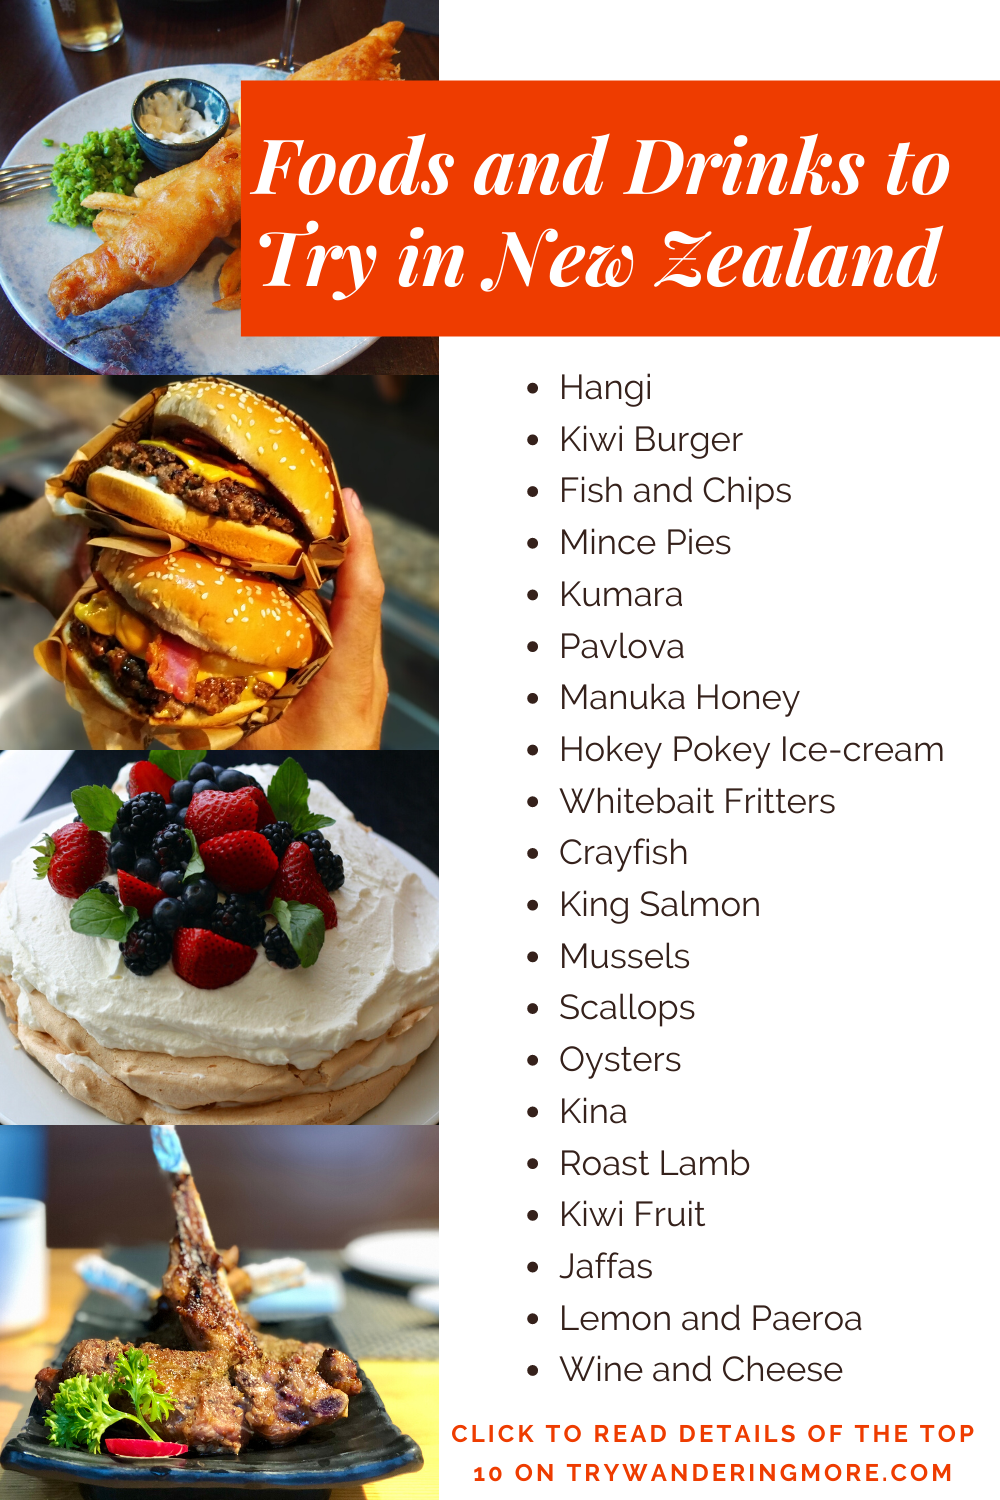 Foods And Drinks To Try In New Zealand In 2020 Food Food And Drink Nz Cuisine